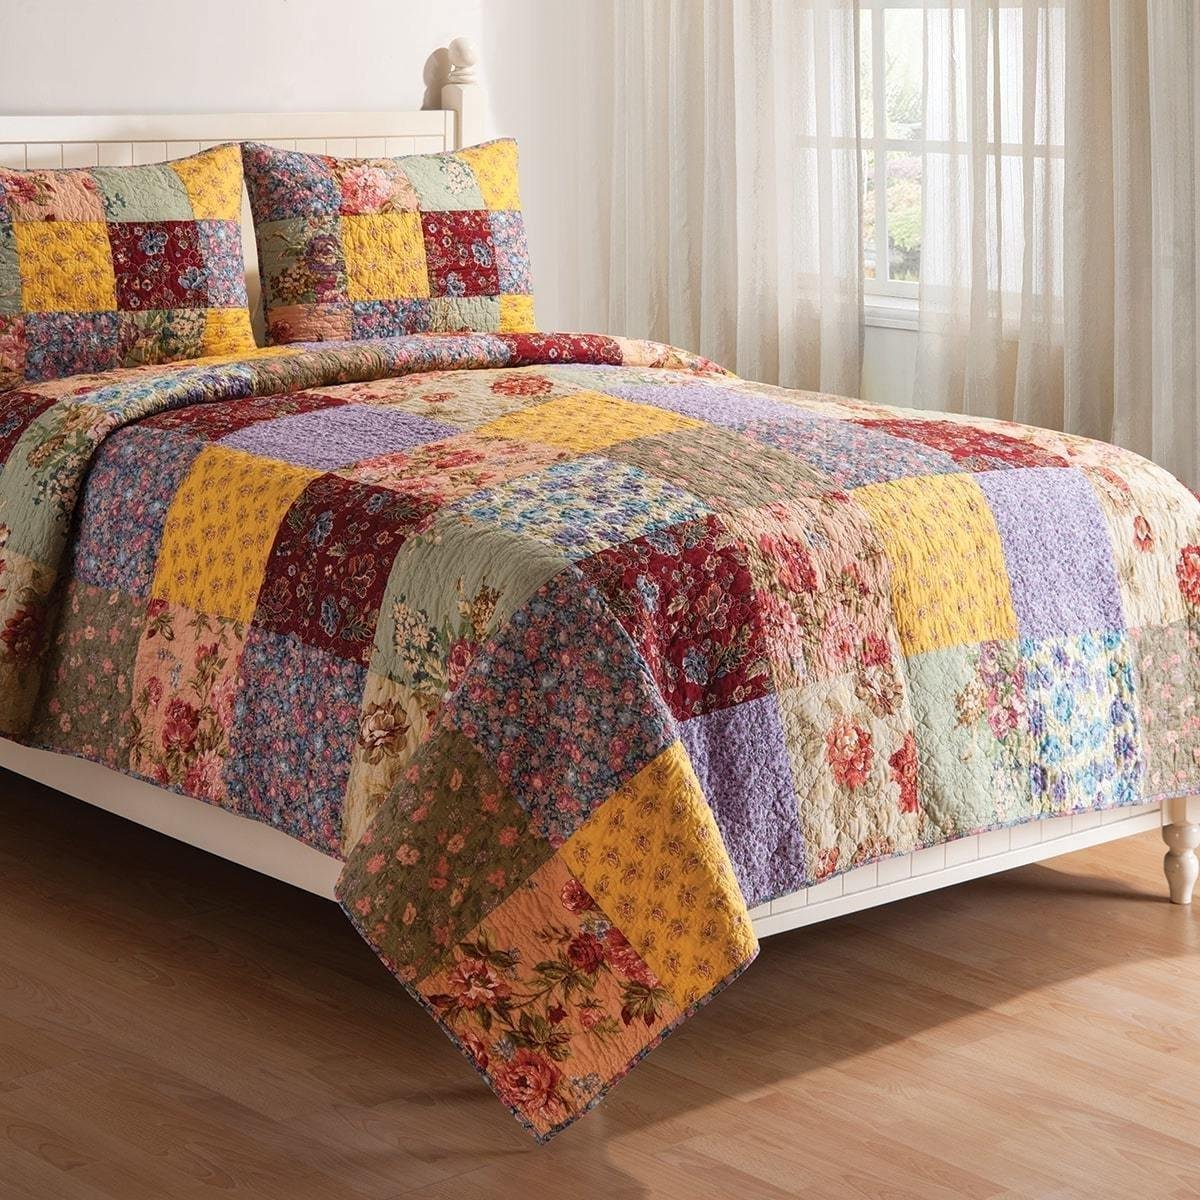 MISC 2pc Vintage Gold Red White Green Blue Pink Full Twin Quilt Set, Cotton, Floral Patchwork Themed Bedding Rose Cottage French Country Rustic Pretty Flower Boho Bohemian Striped